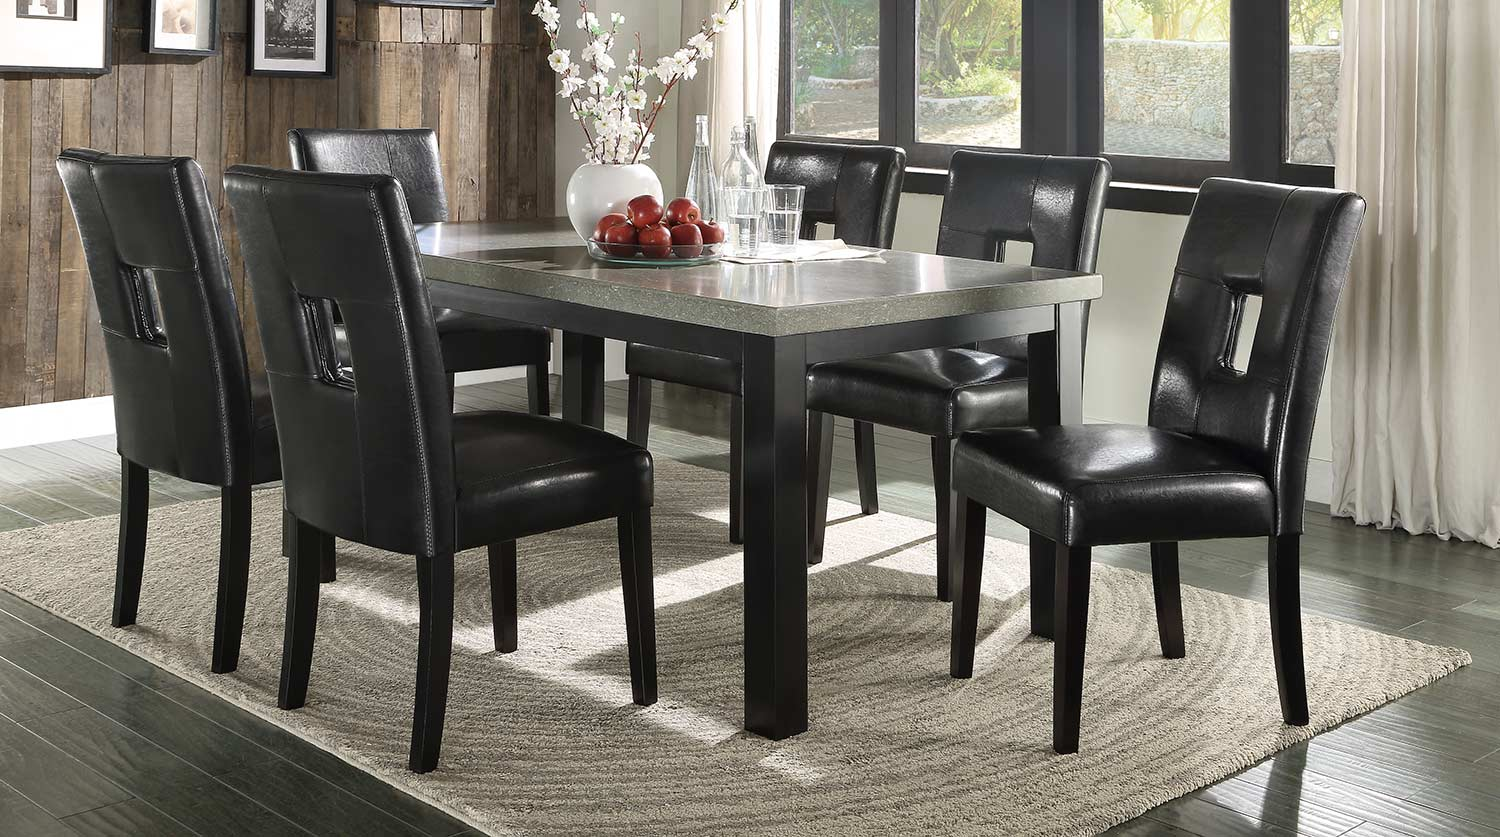 Homelegance Beliot Dining Set - Black